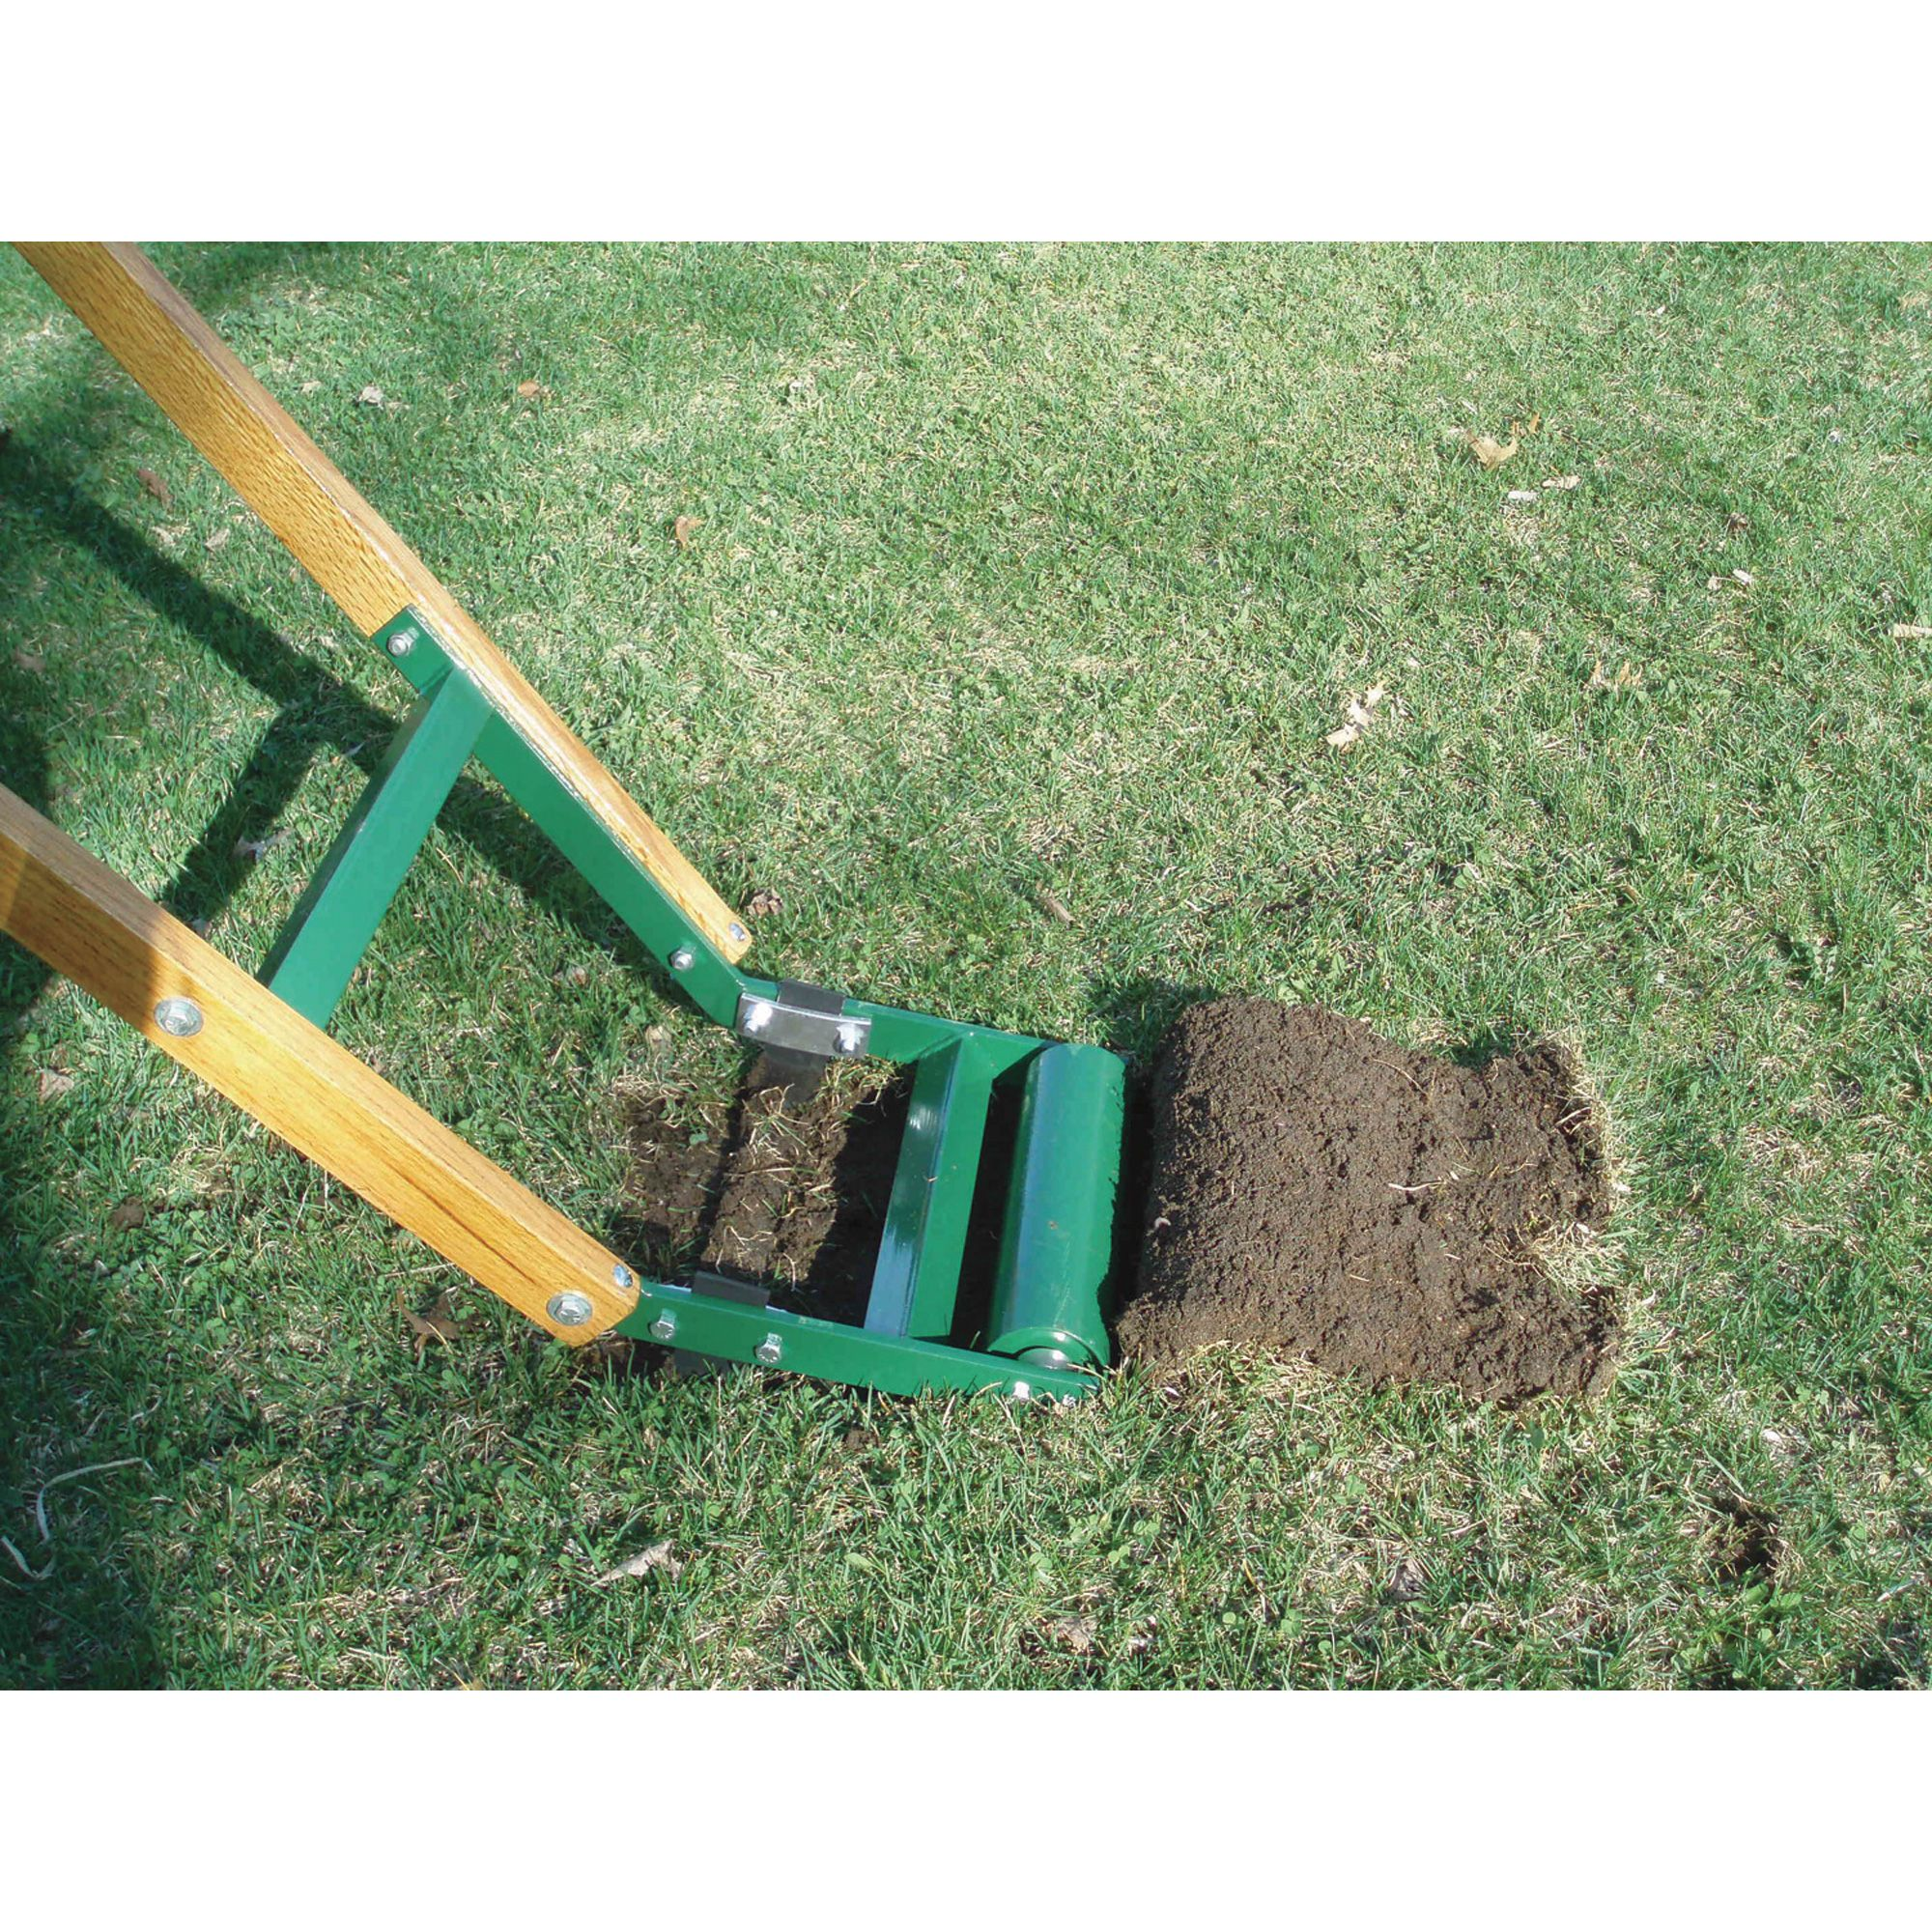 The Quail Manual Kick Type Sod Cutter Edger Easily Removes Sod For Patios Gardens And Landscaping U S A Sod Cutter Lawn And Garden Sod